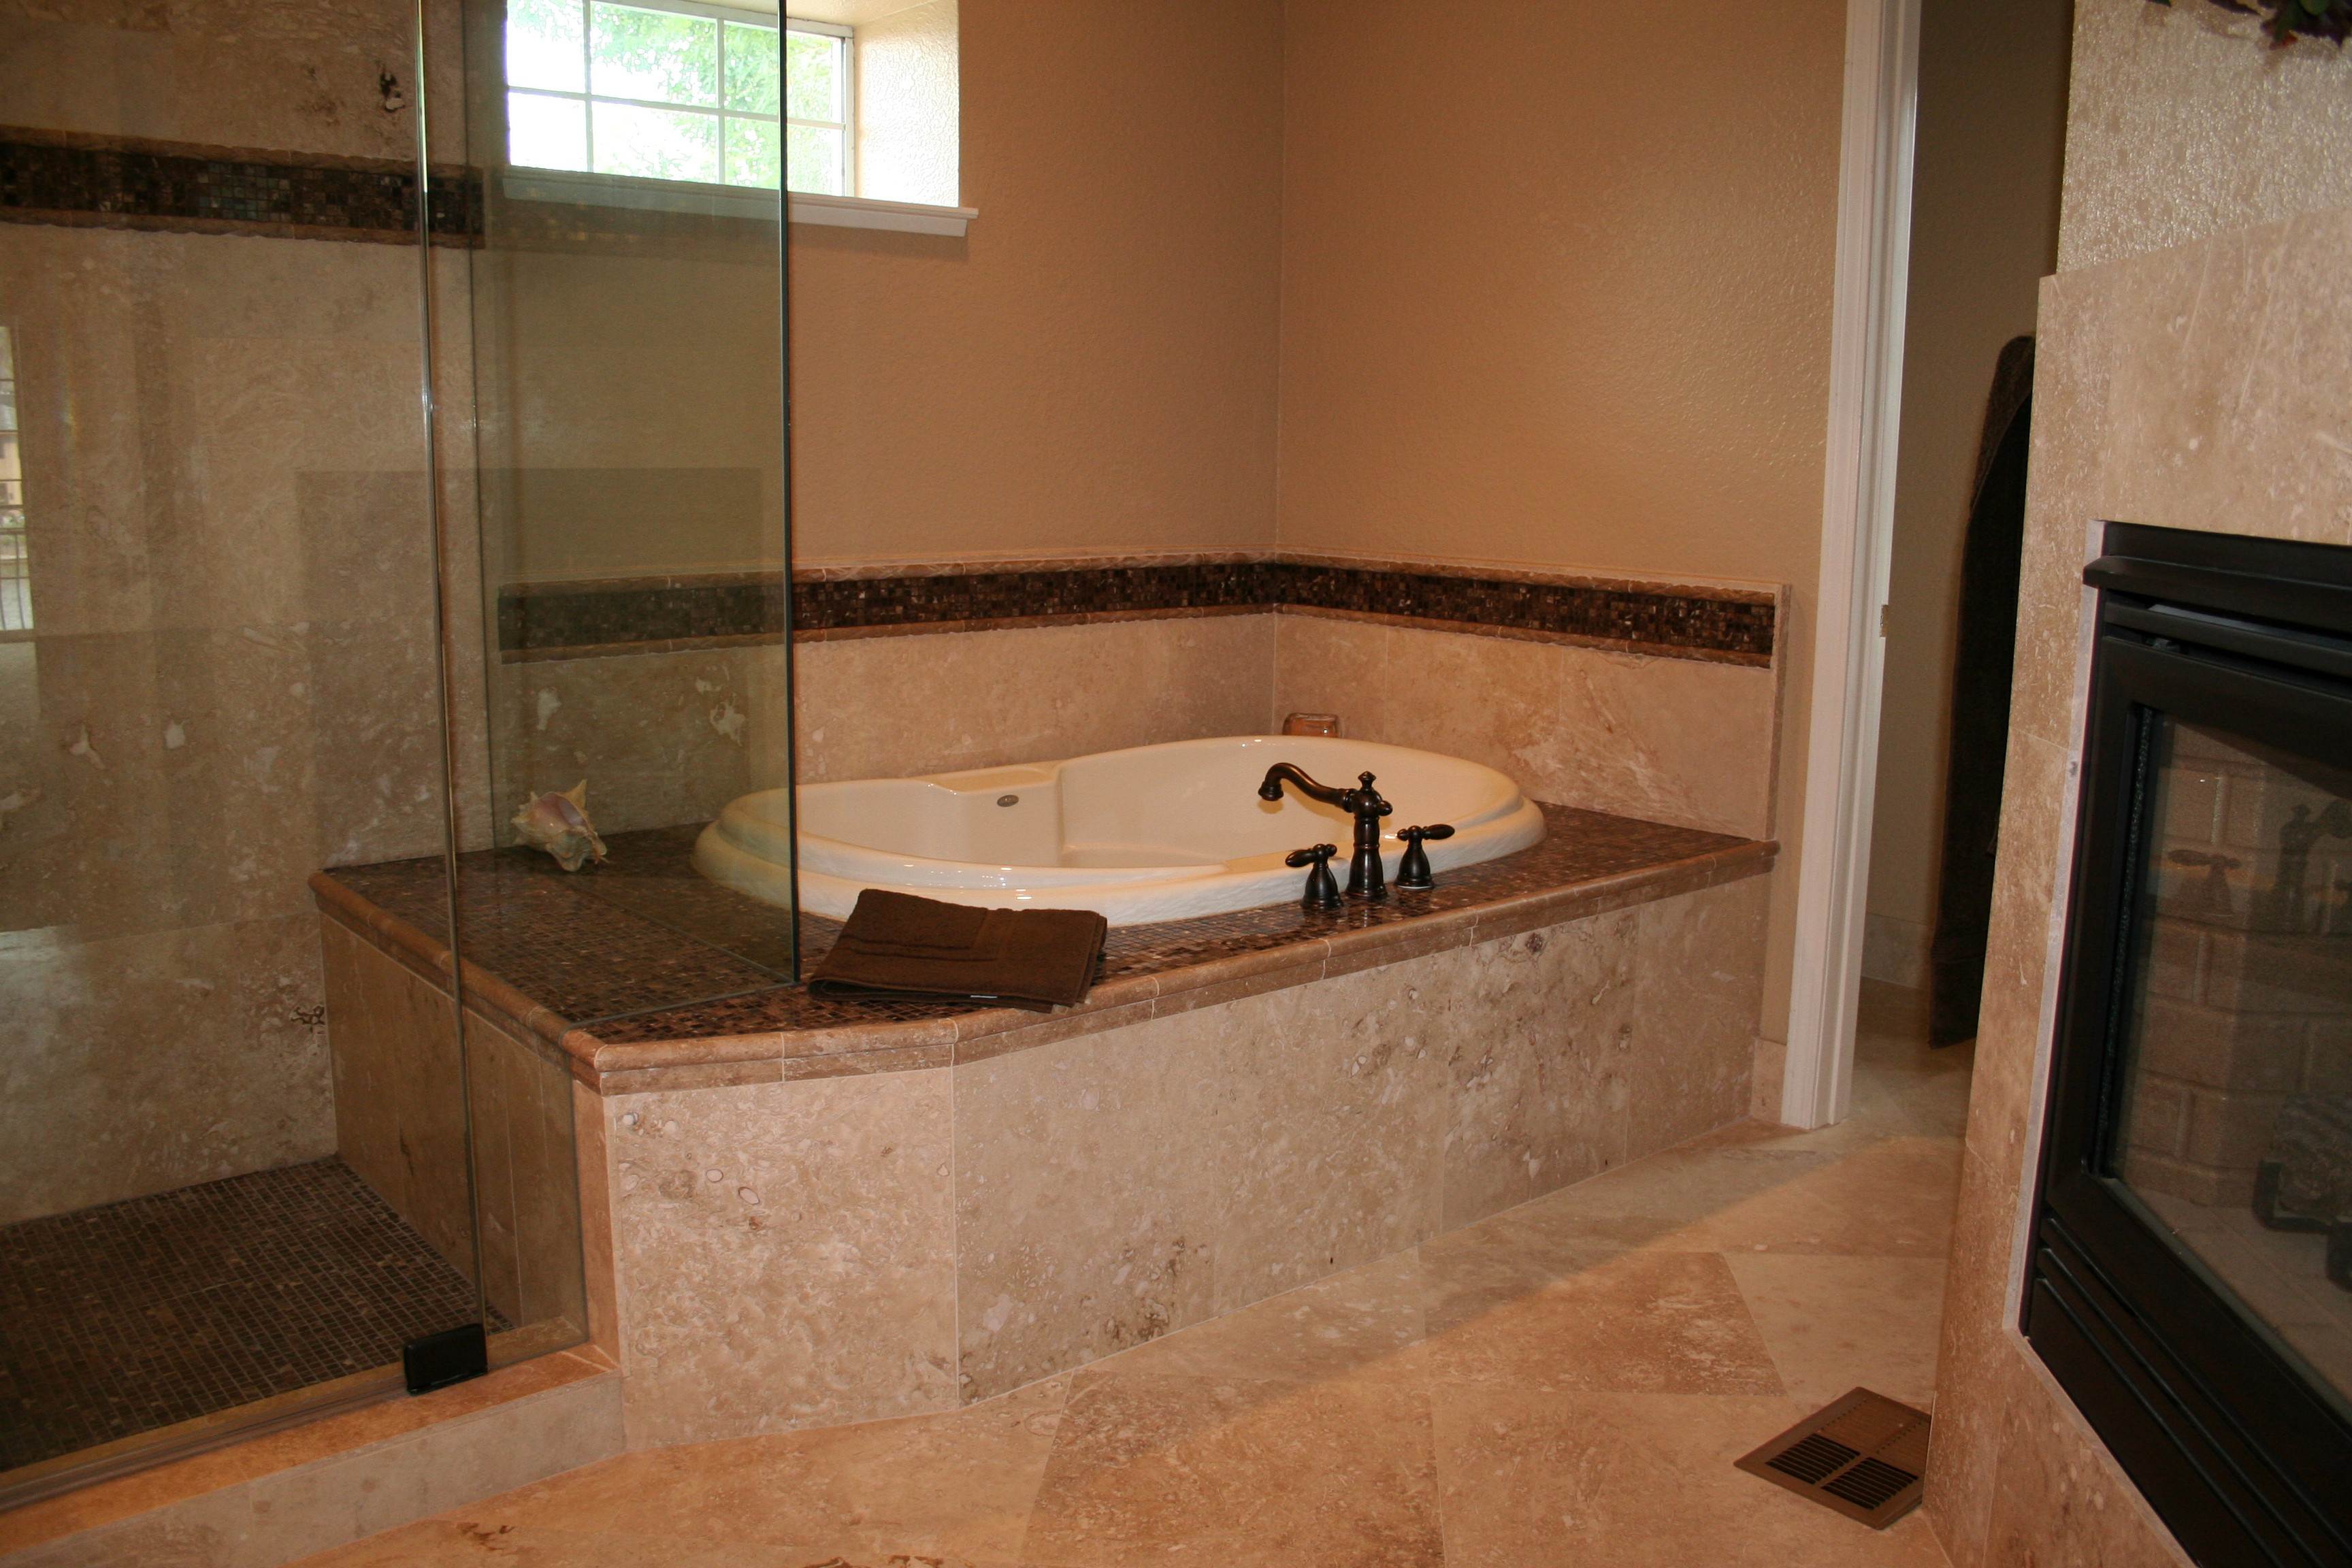 Bathroom remodel sacramento yancey company sacramento ca for Bathroom photos